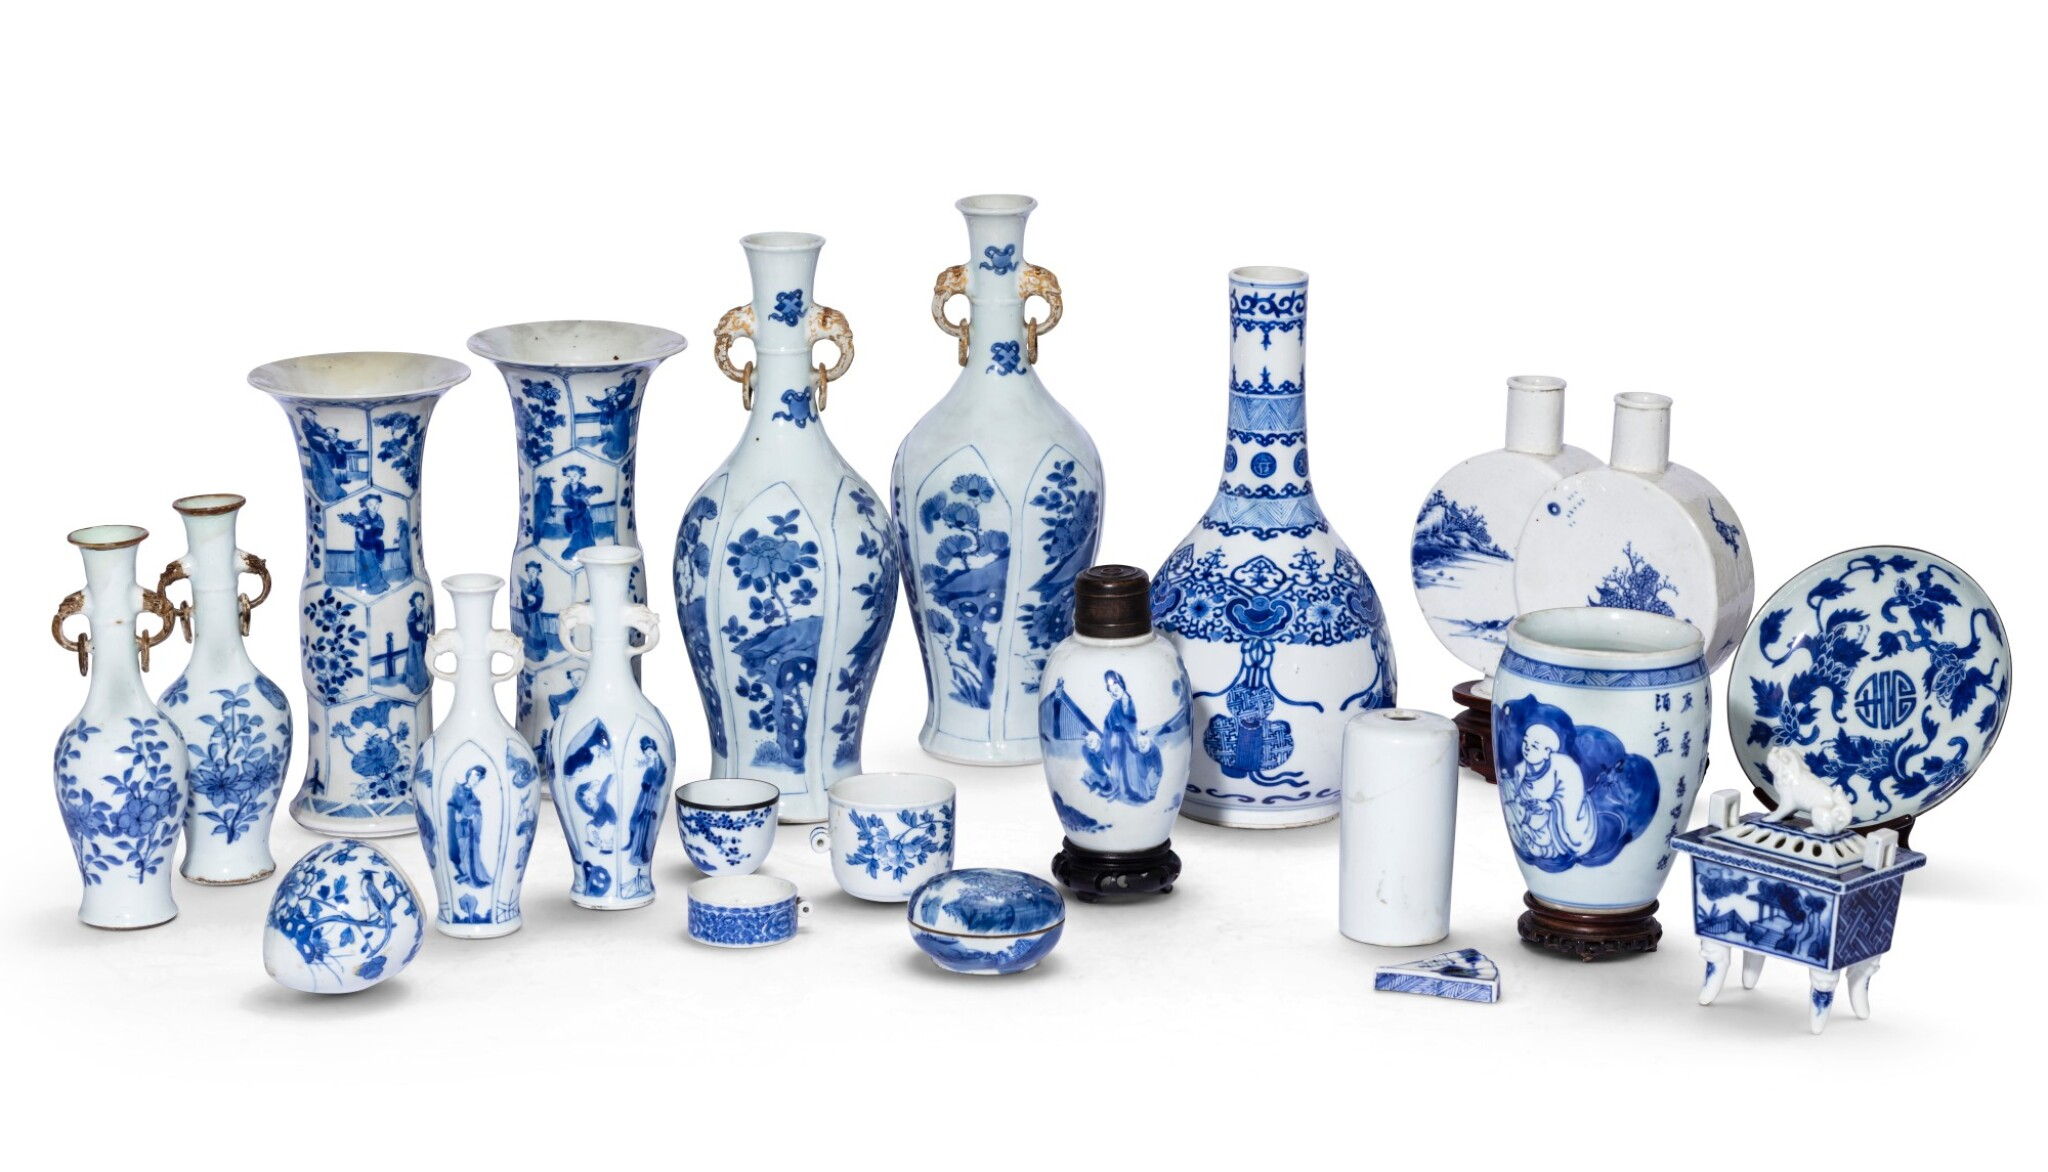 View 1 of Lot 185. Ensemble de porcelaines bleu blanc Dynastie Qing, XVIIIE et XIXE siècle | 清十八及十九世紀 青花瓷器 一組二十 一件 | A group of twenty-one blue and white wares, Qing Dynasty, 18th and 19th century.